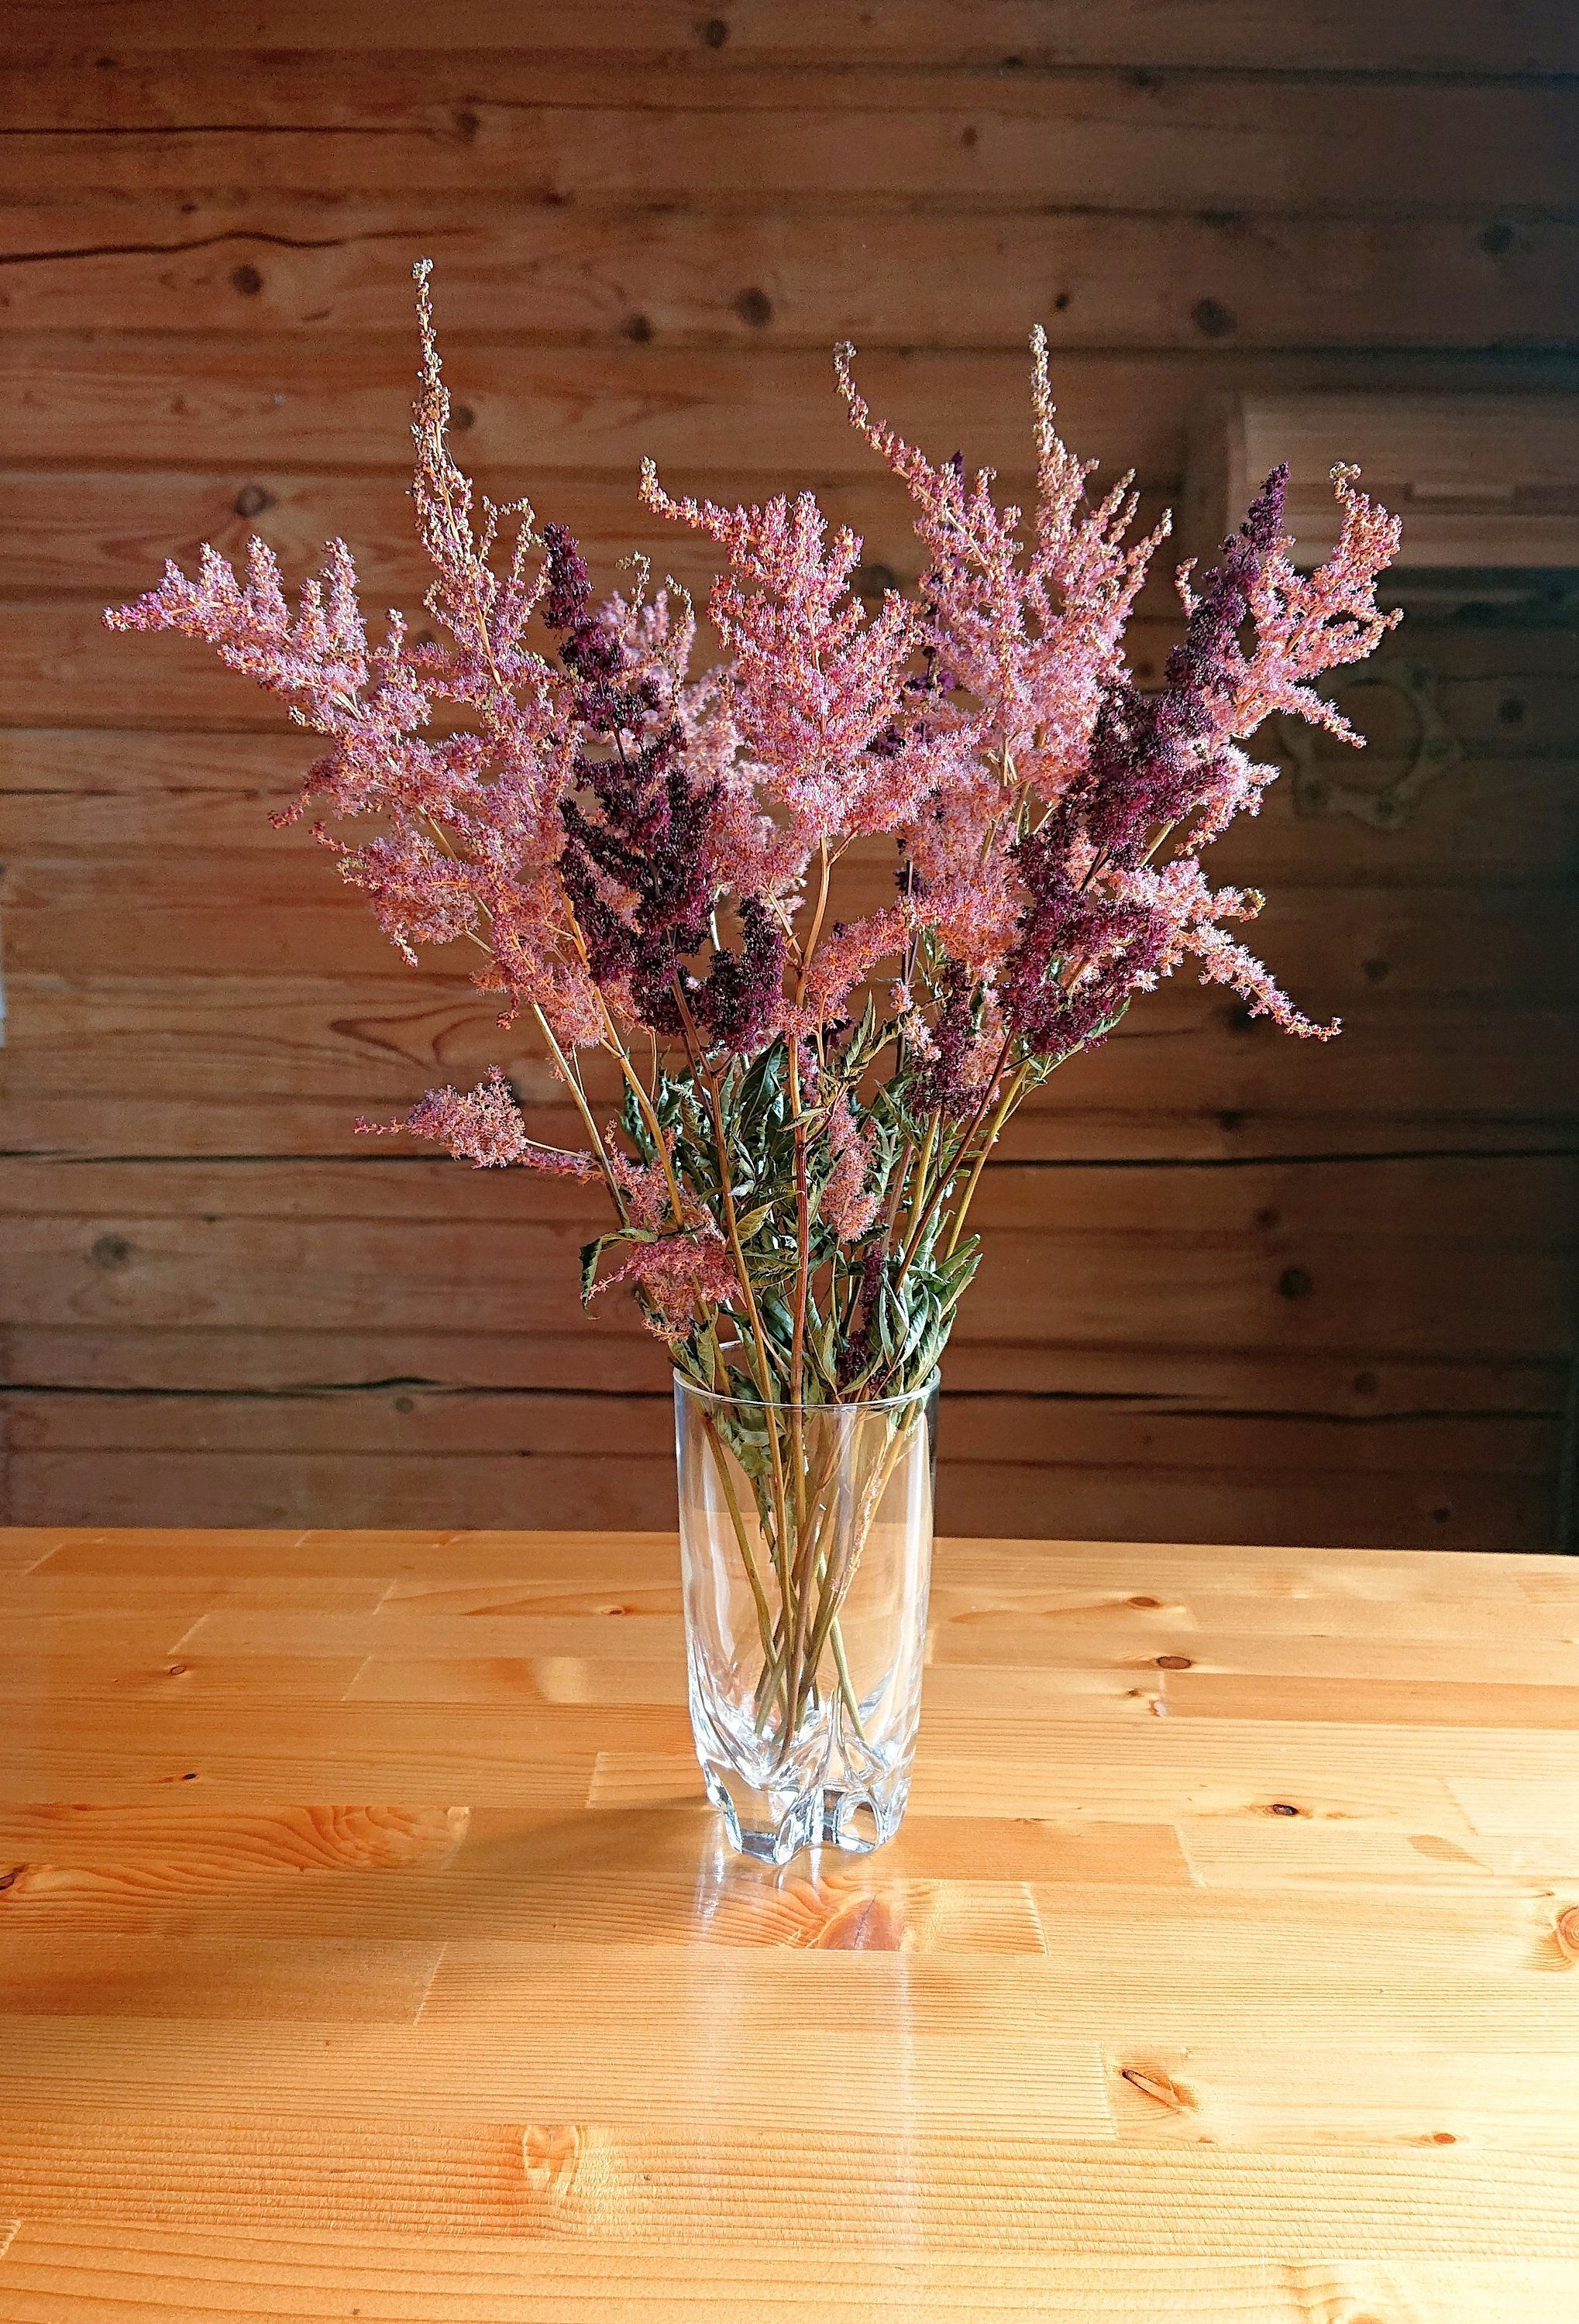 Dried Flower Bunches Astilbe Dried Flower Bunch Dried Flowers Etsy In 2020 Dried Flower Bouquet Dried Flowers Flowers